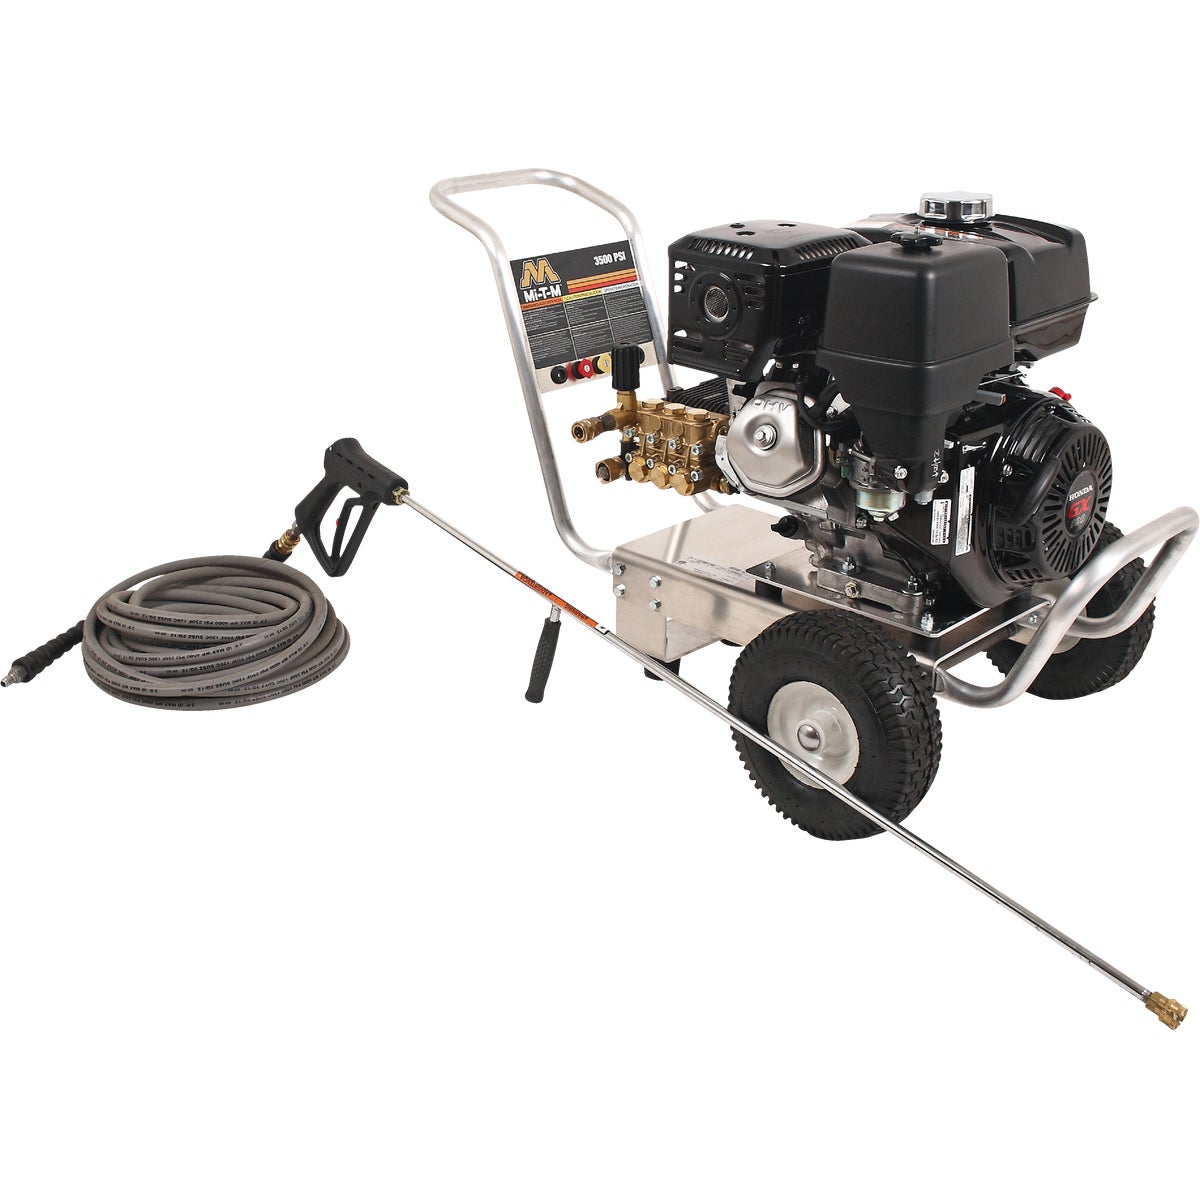 3500PSI PRESSURE WASHER